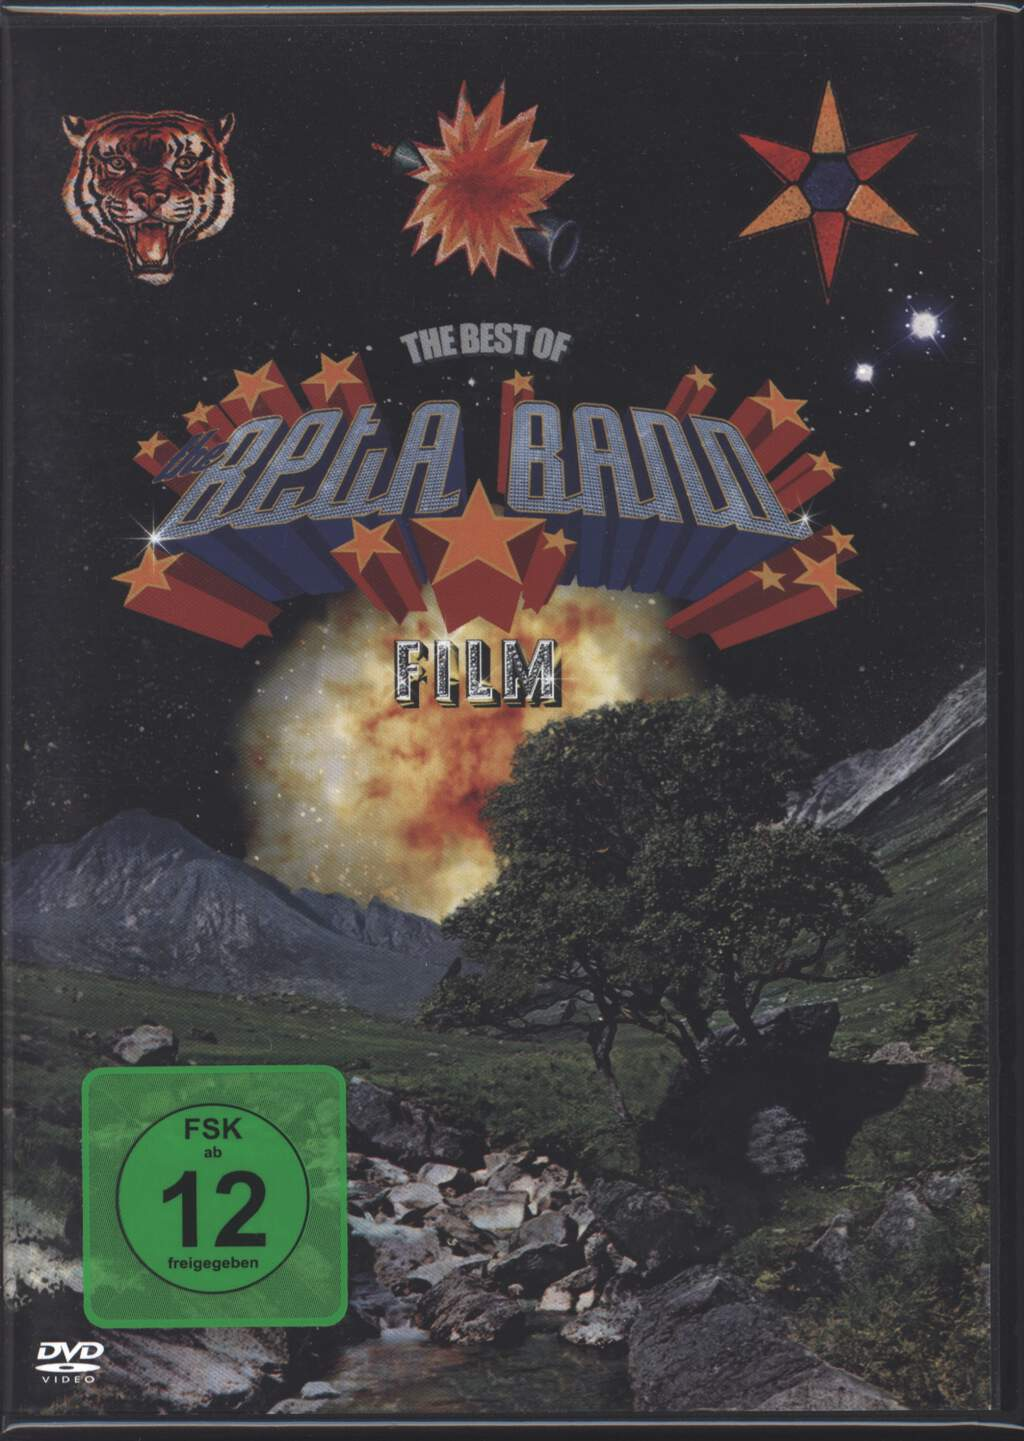 The Beta Band: The Best Of The Beta Band - Film, DVD